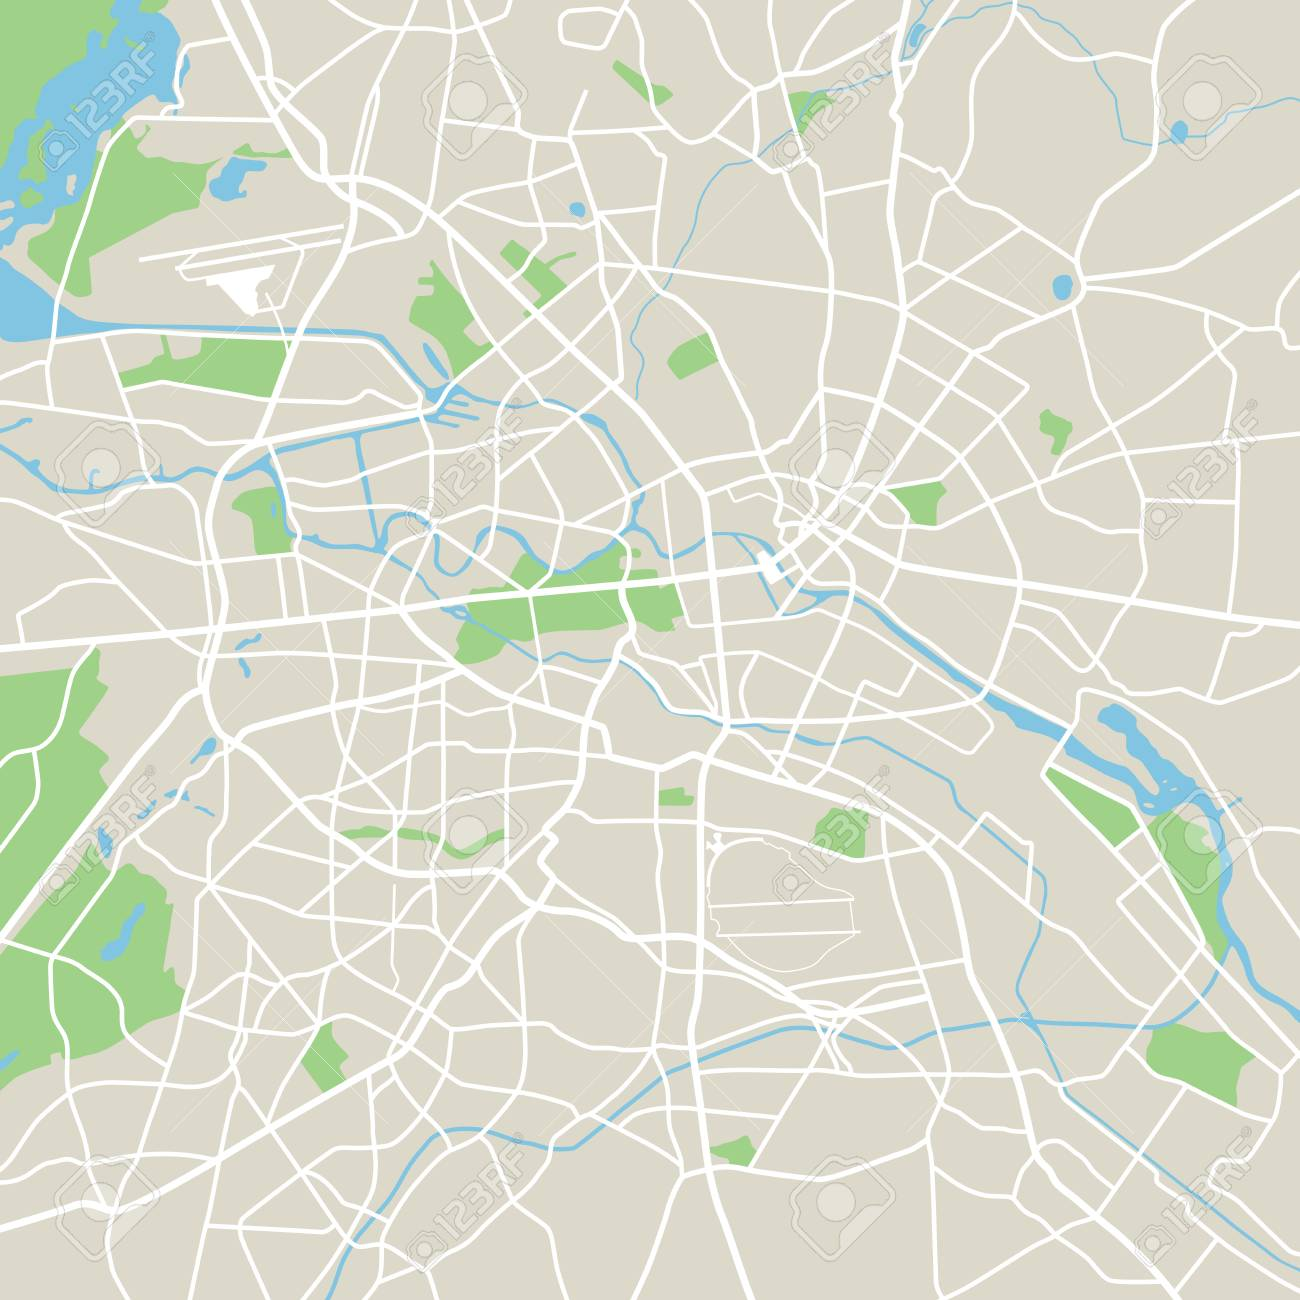 Abstract city map - Illustration - 63634990